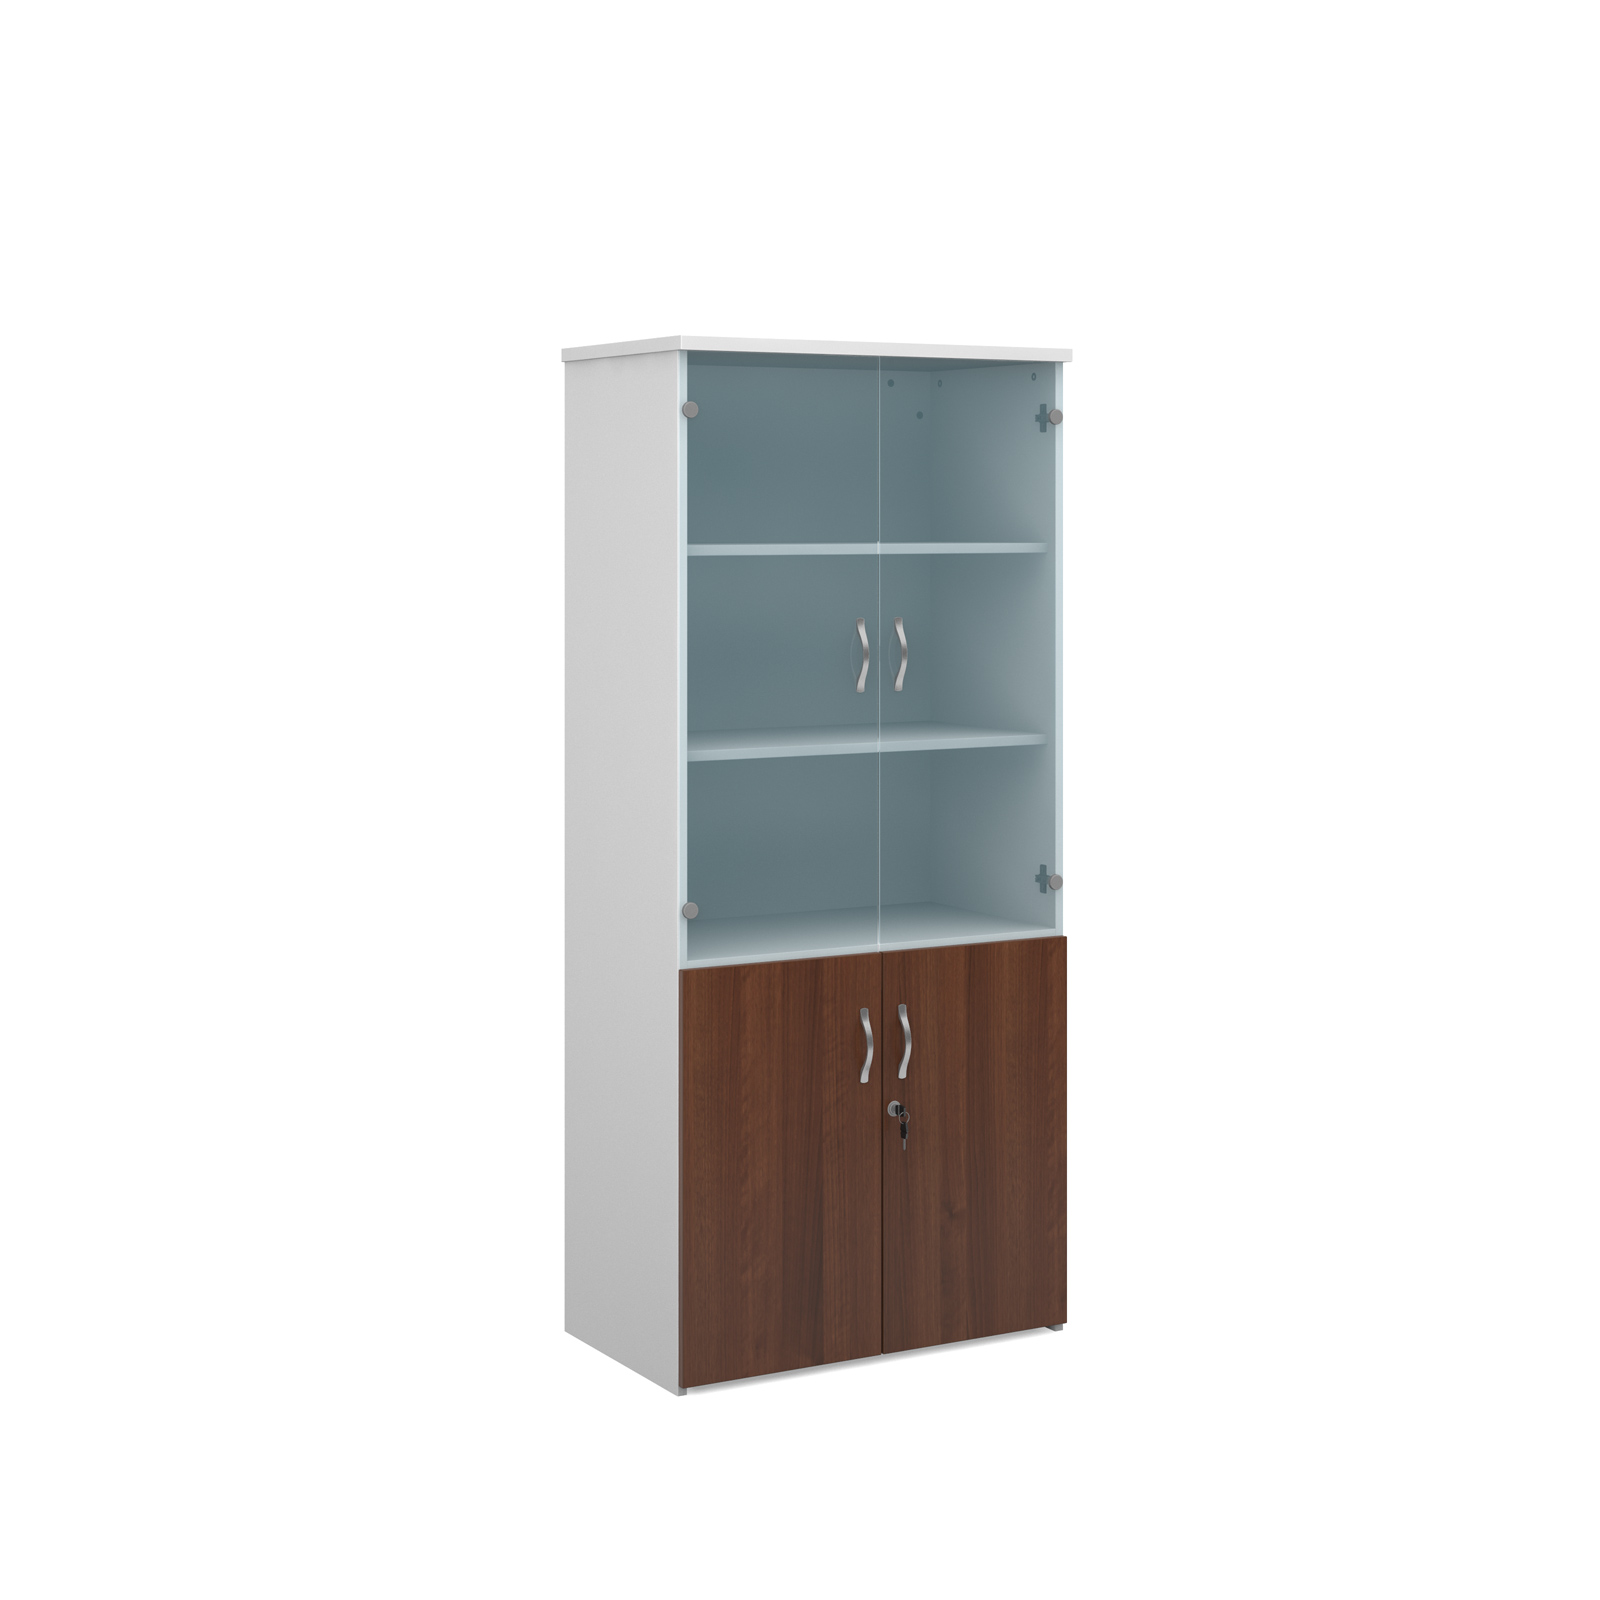 1790mm high combination unit with glass and wood doors in walnut and white